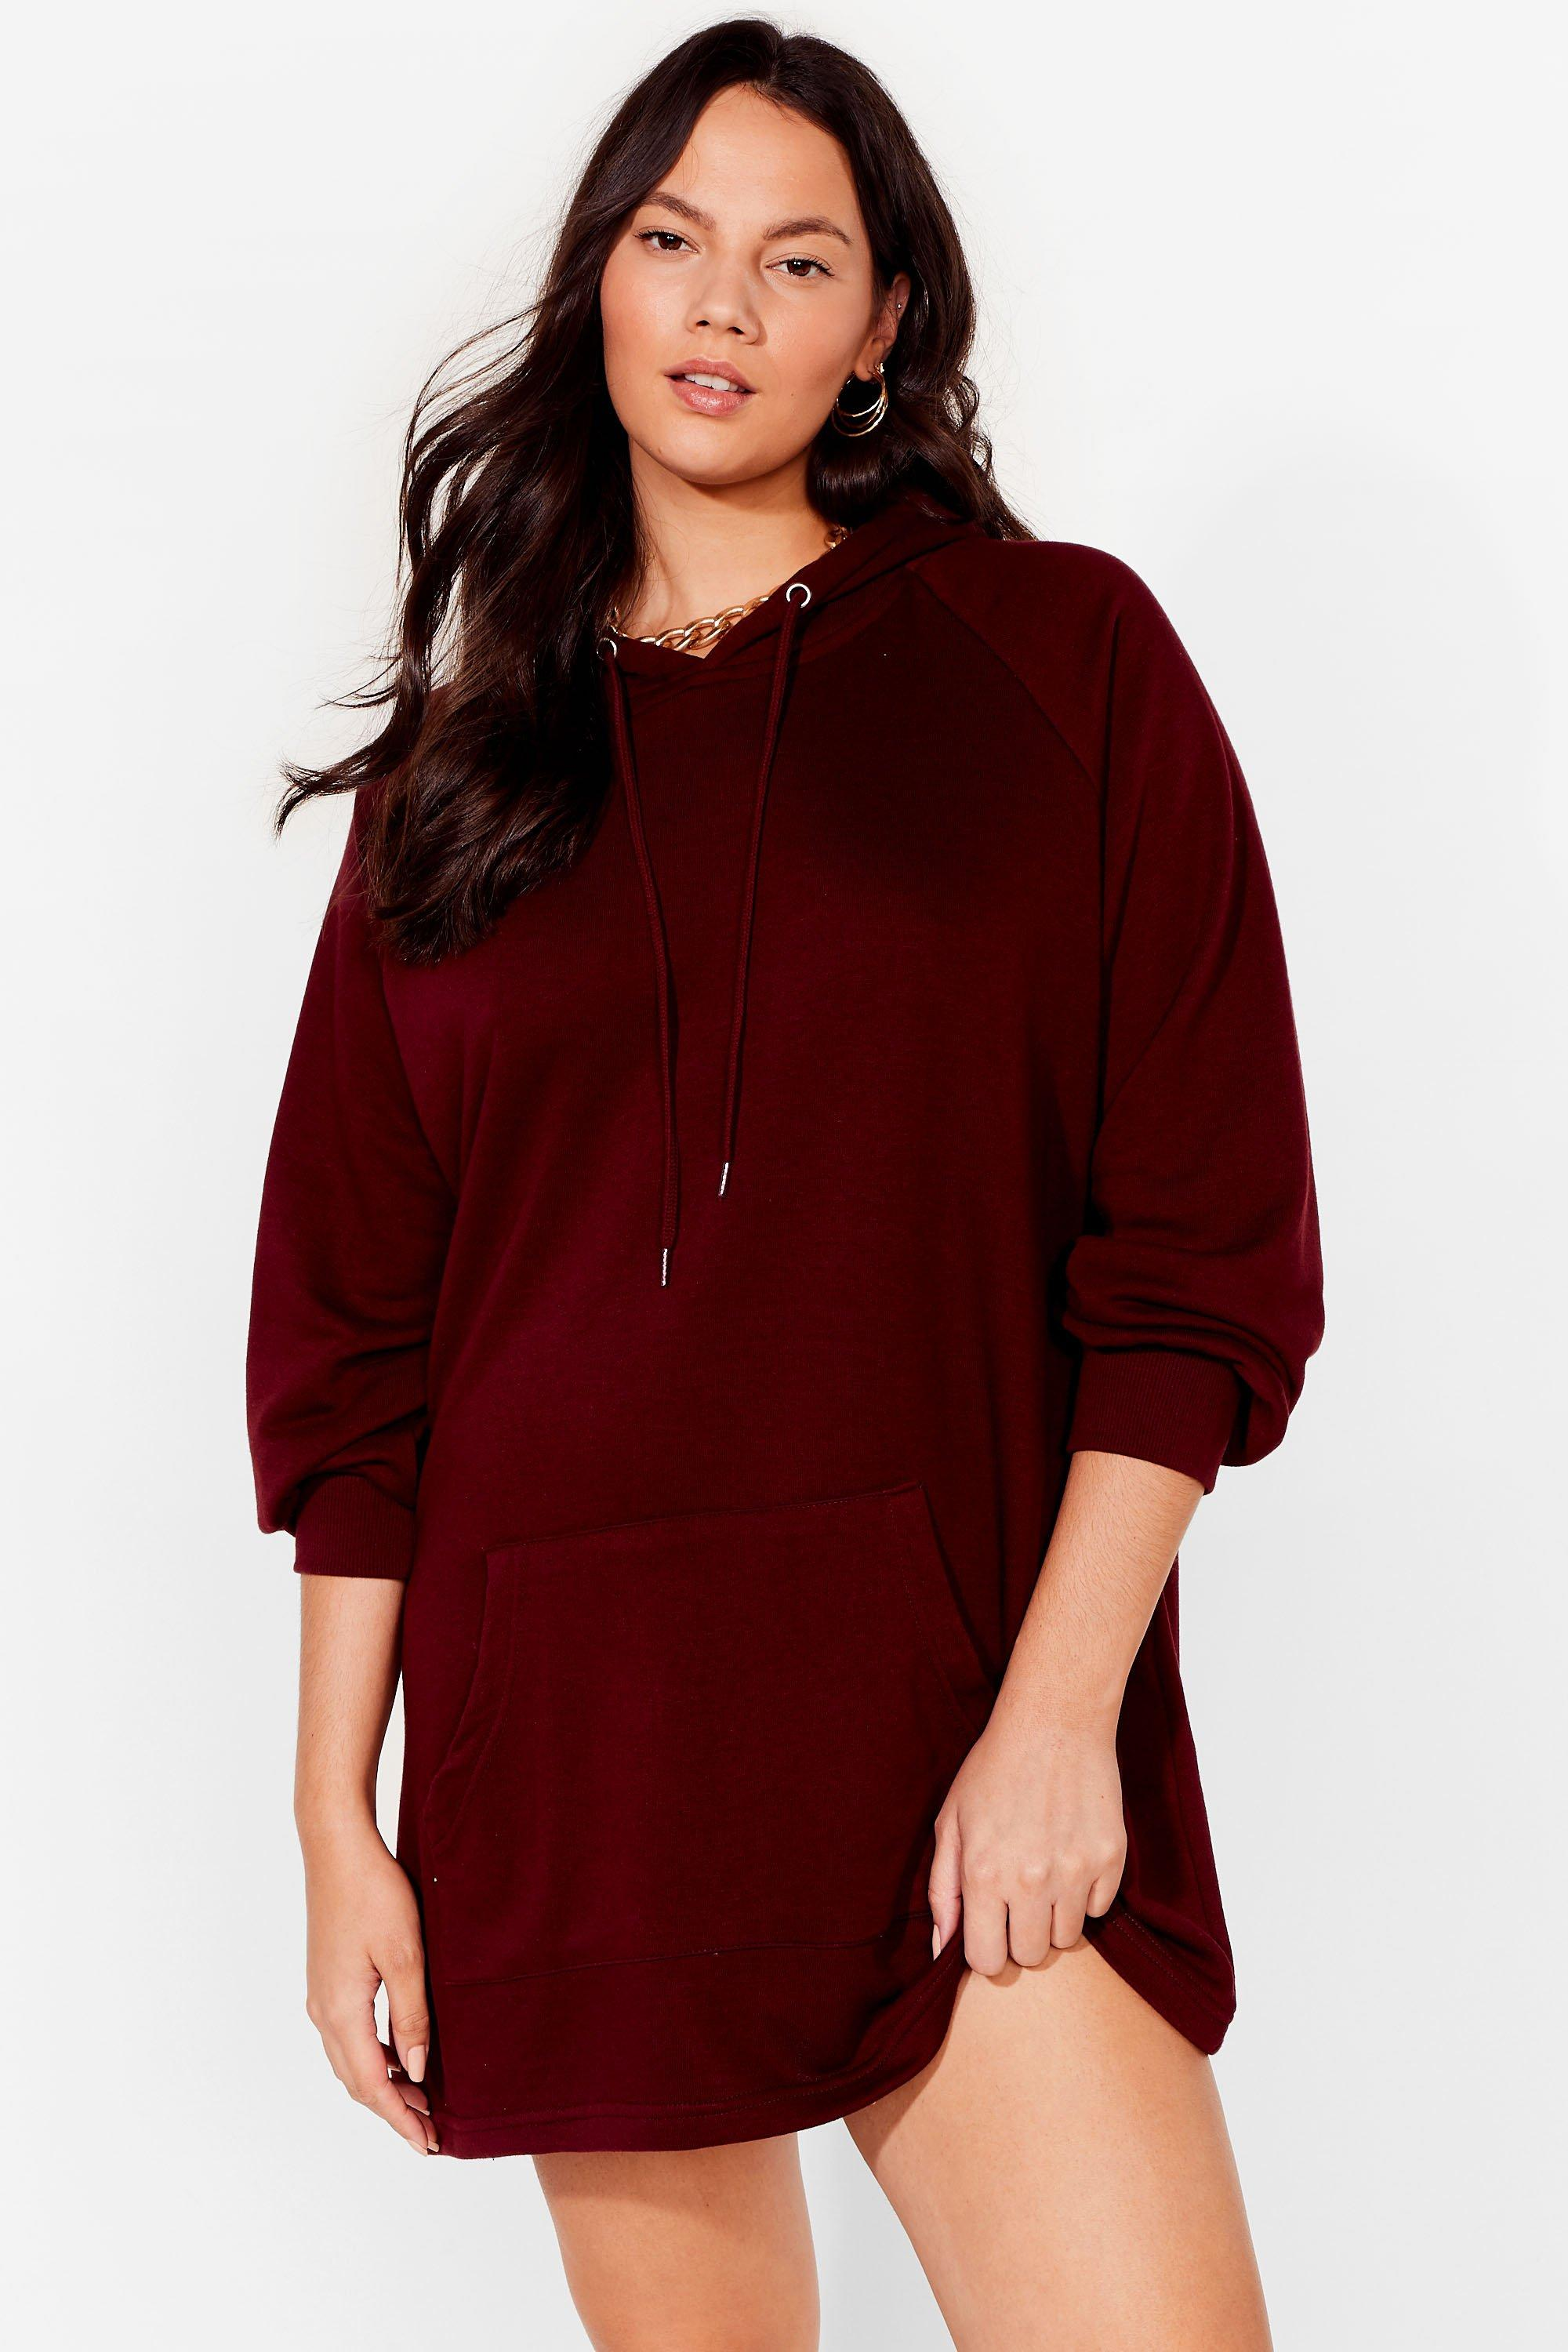 All Night Longline Plus Oversized Sweatshirt Dress 15